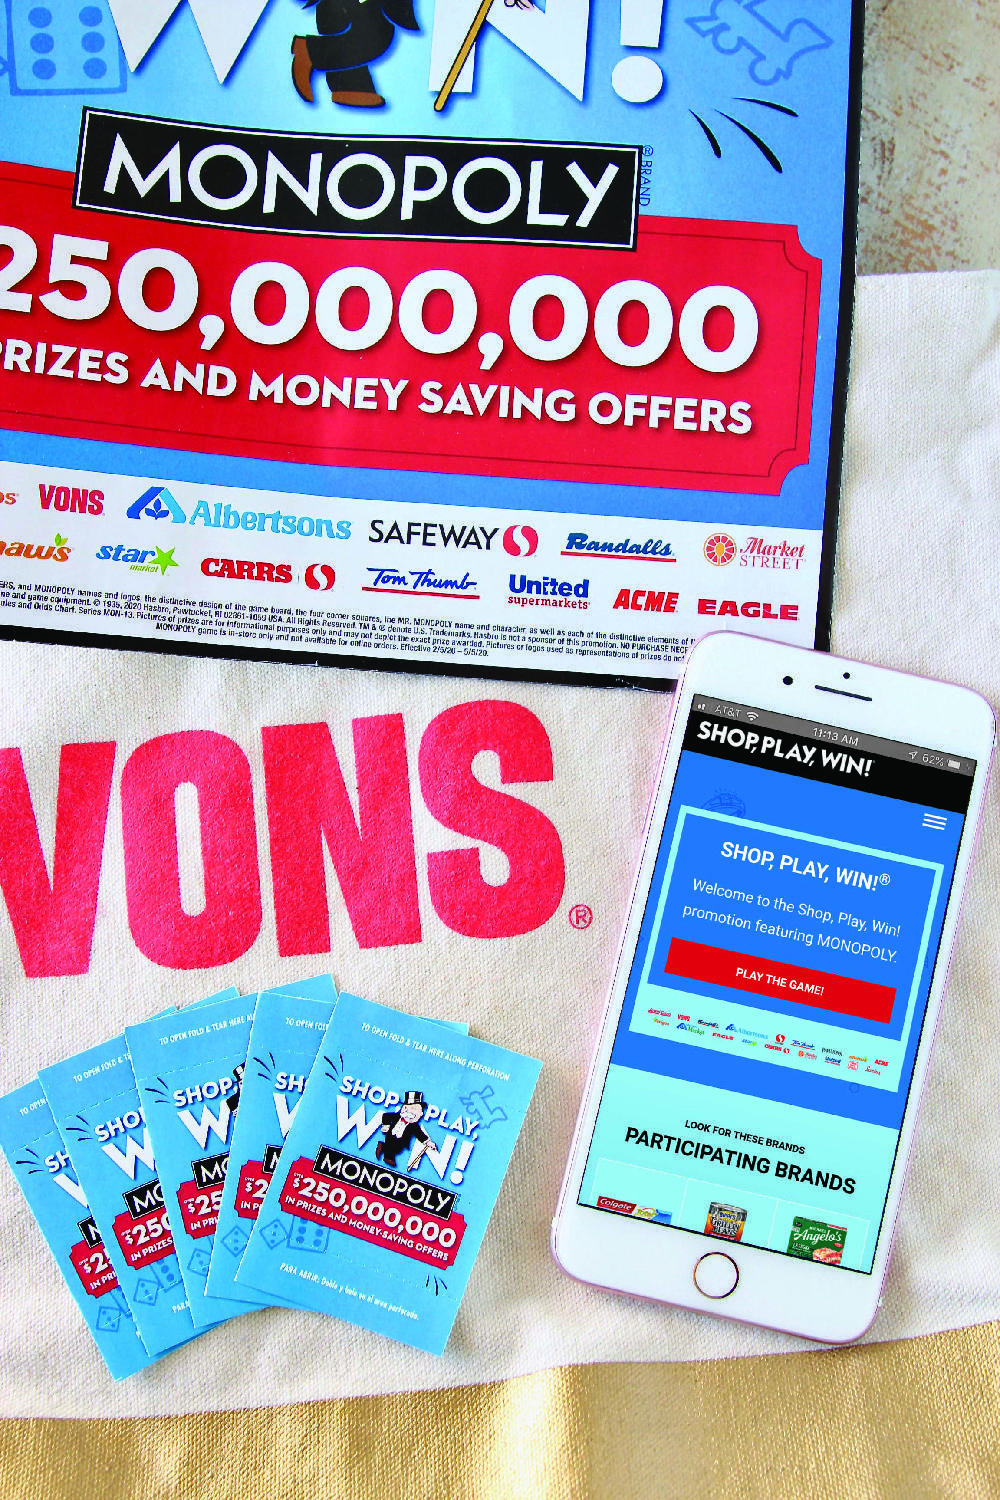 Vons Shop Play Win Monopoly Game